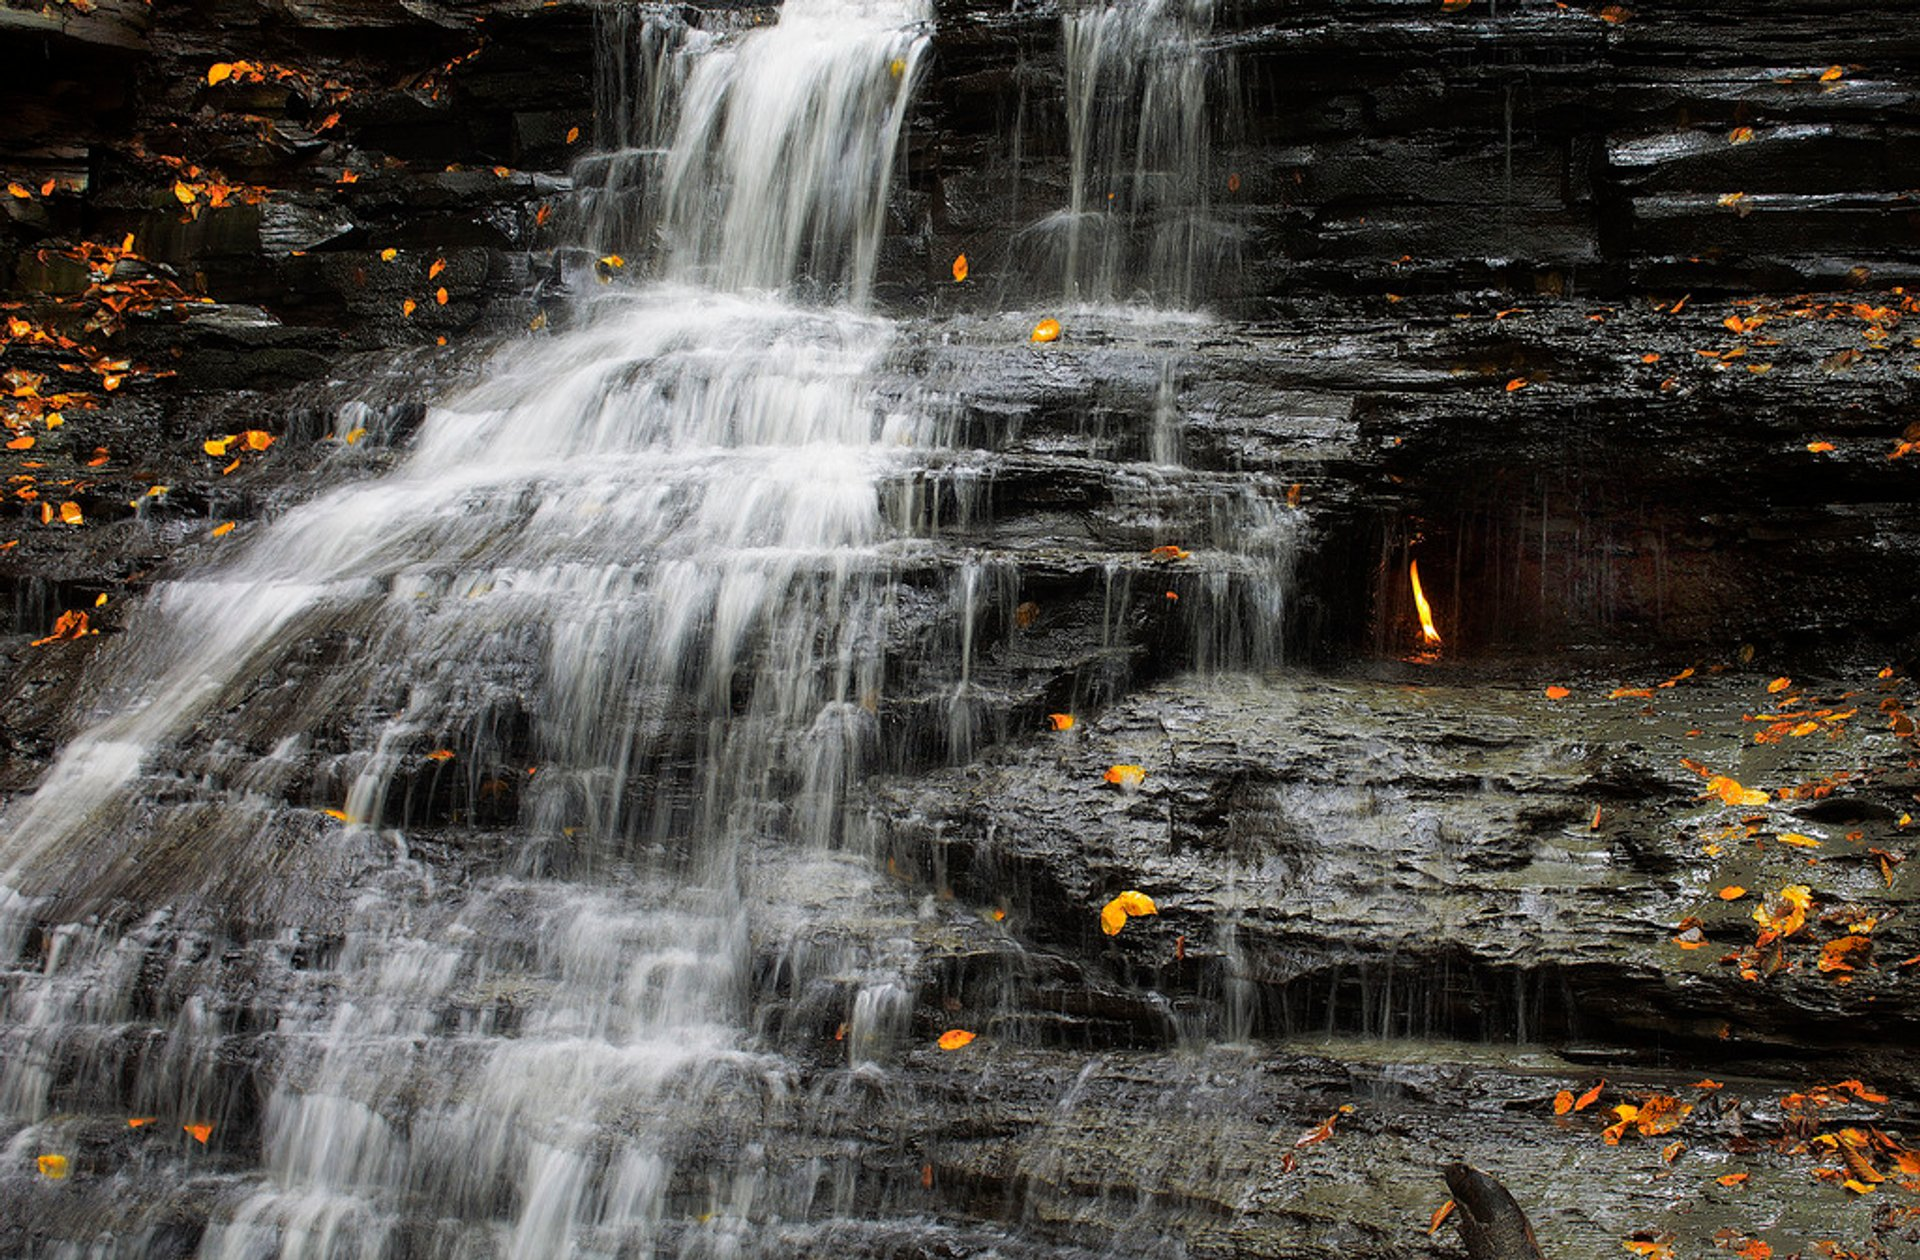 Best time for Eternal Flame Falls in Niagara Falls 2020